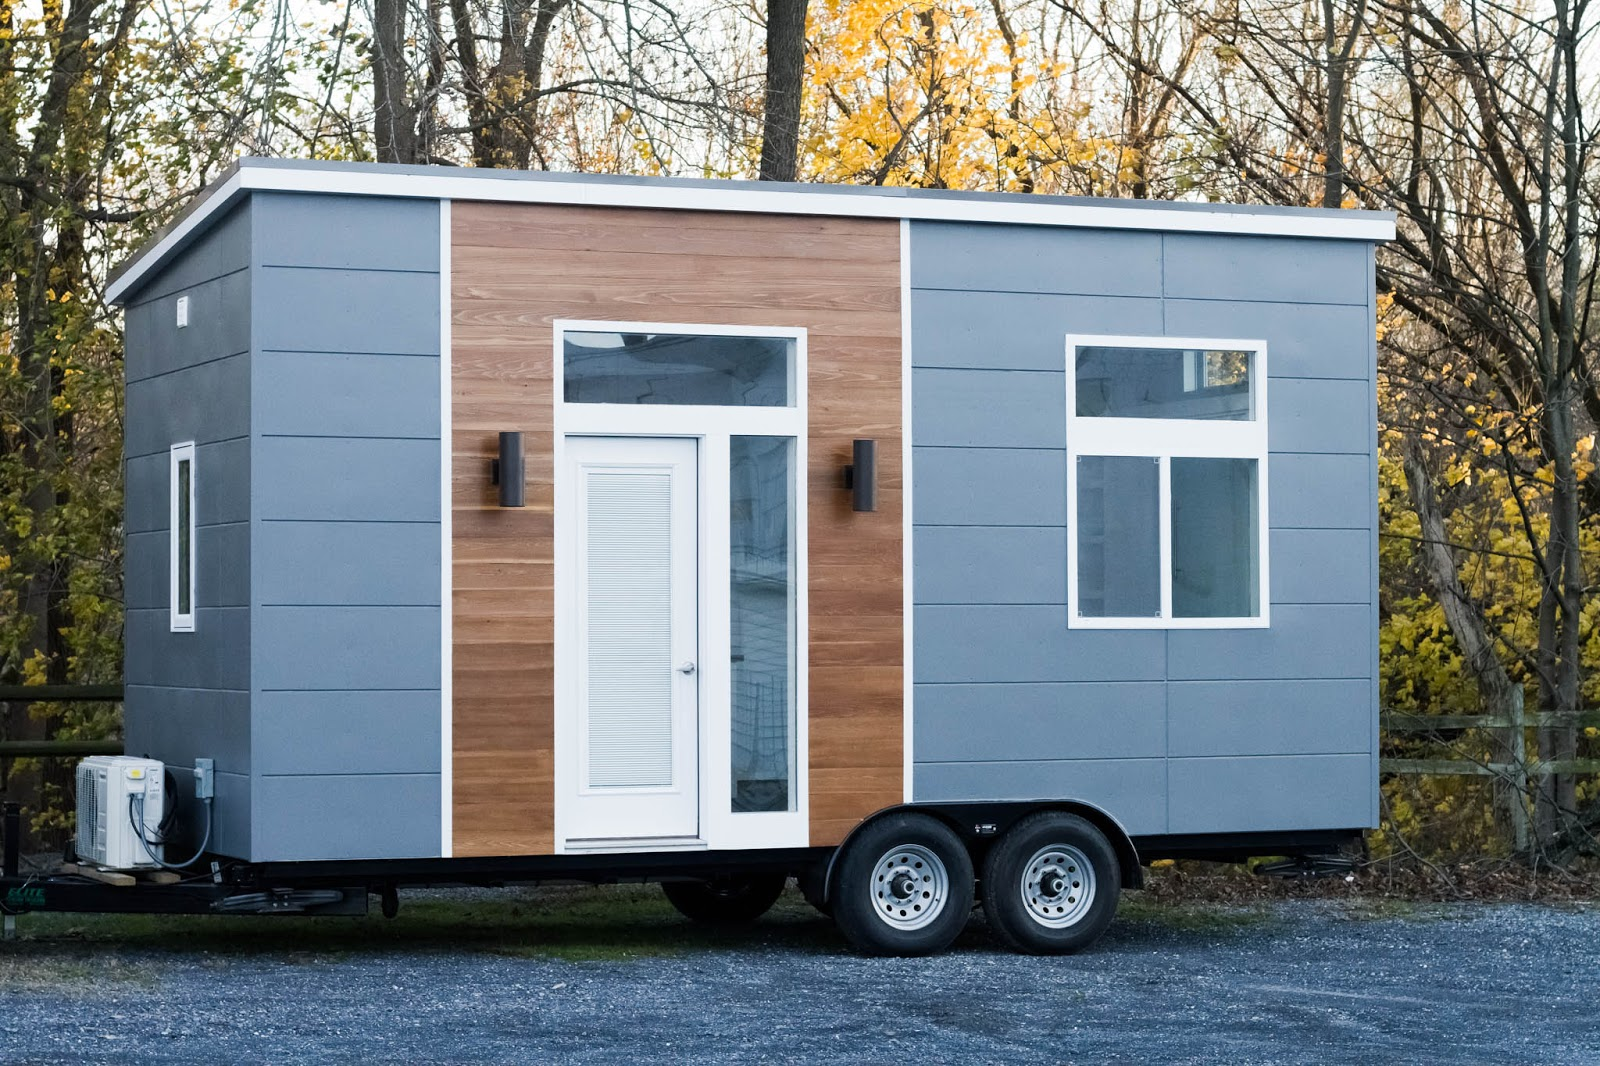 Tiny house town mid century modern tiny home 170 sq ft for Contemporary tiny house